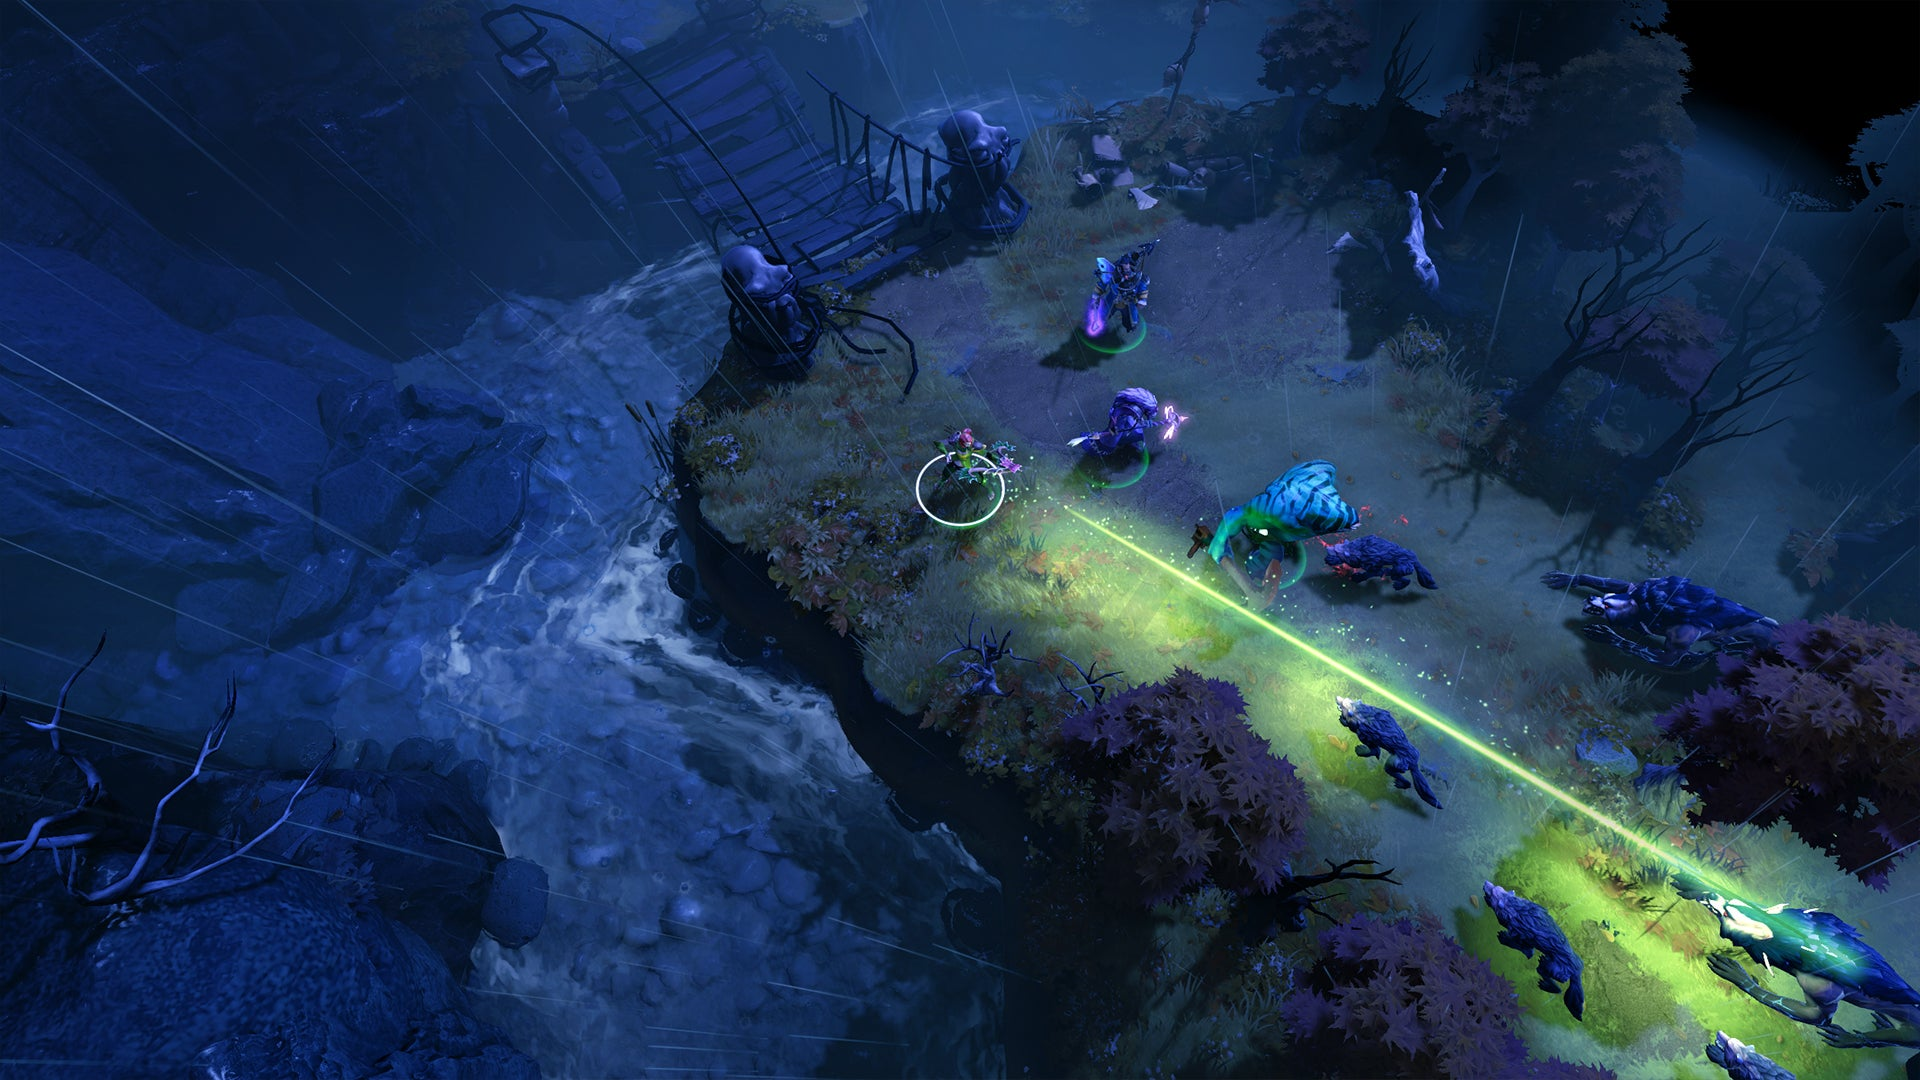 DOTA 2 is getting new co-op story missions